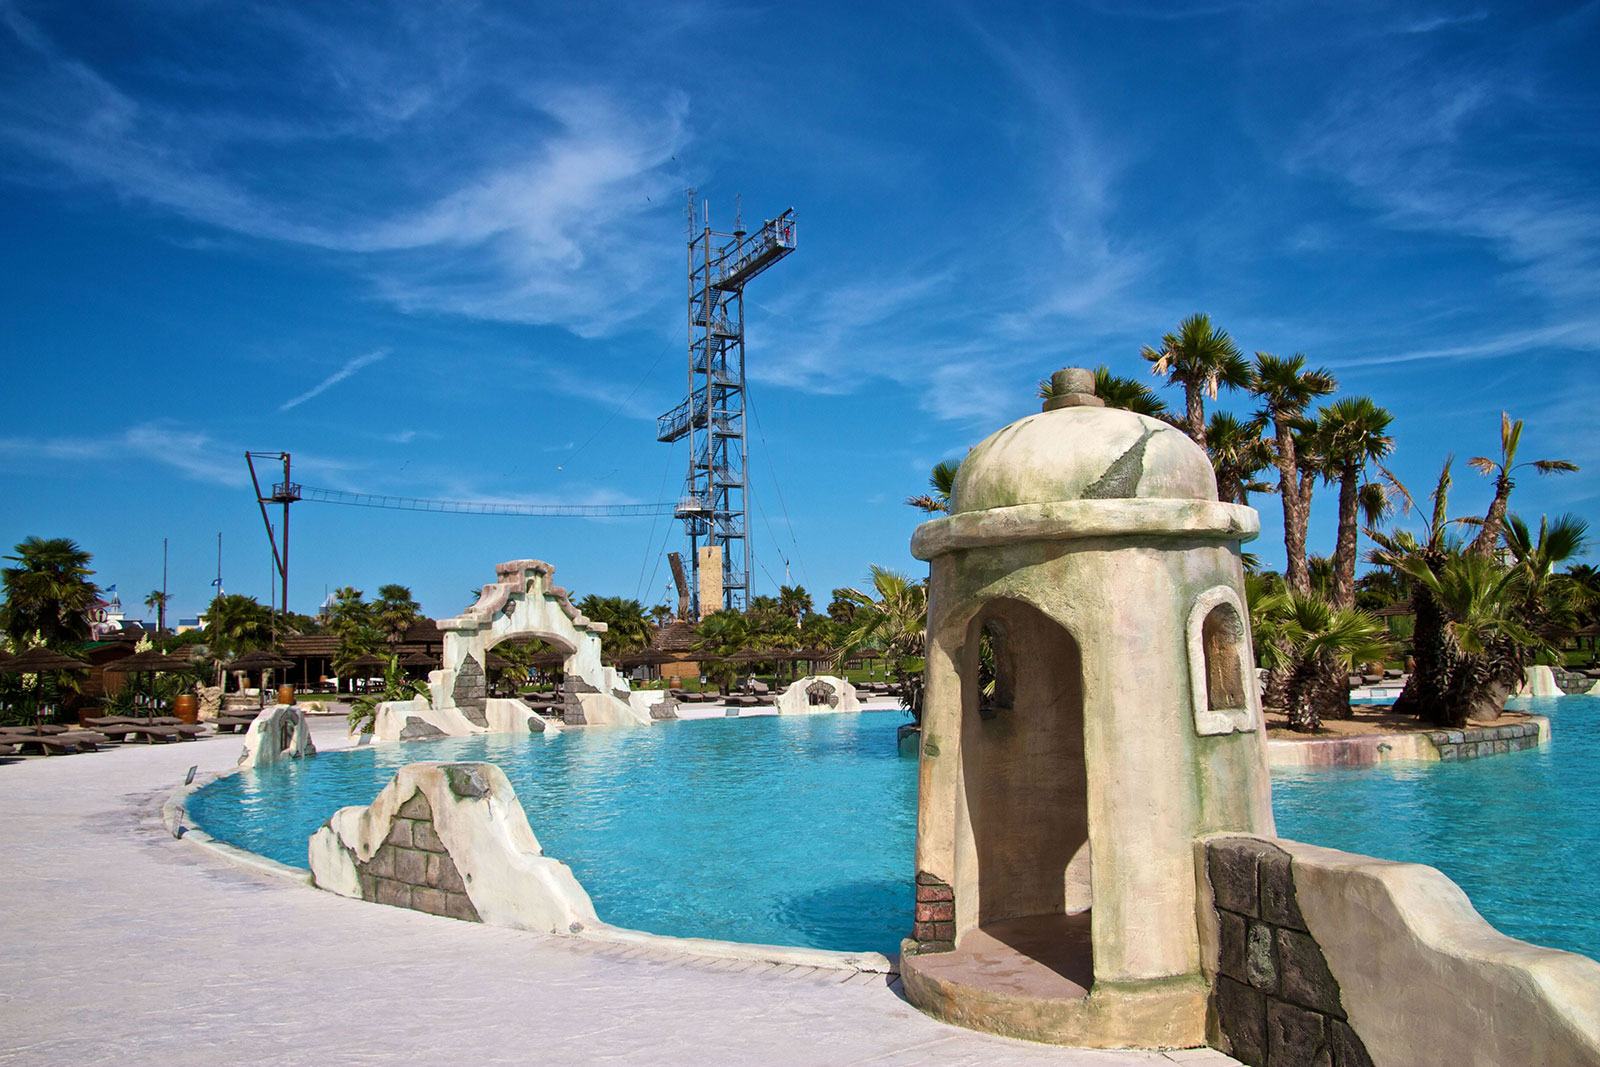 3-Jesolo-Aqualandia---water-theme-park